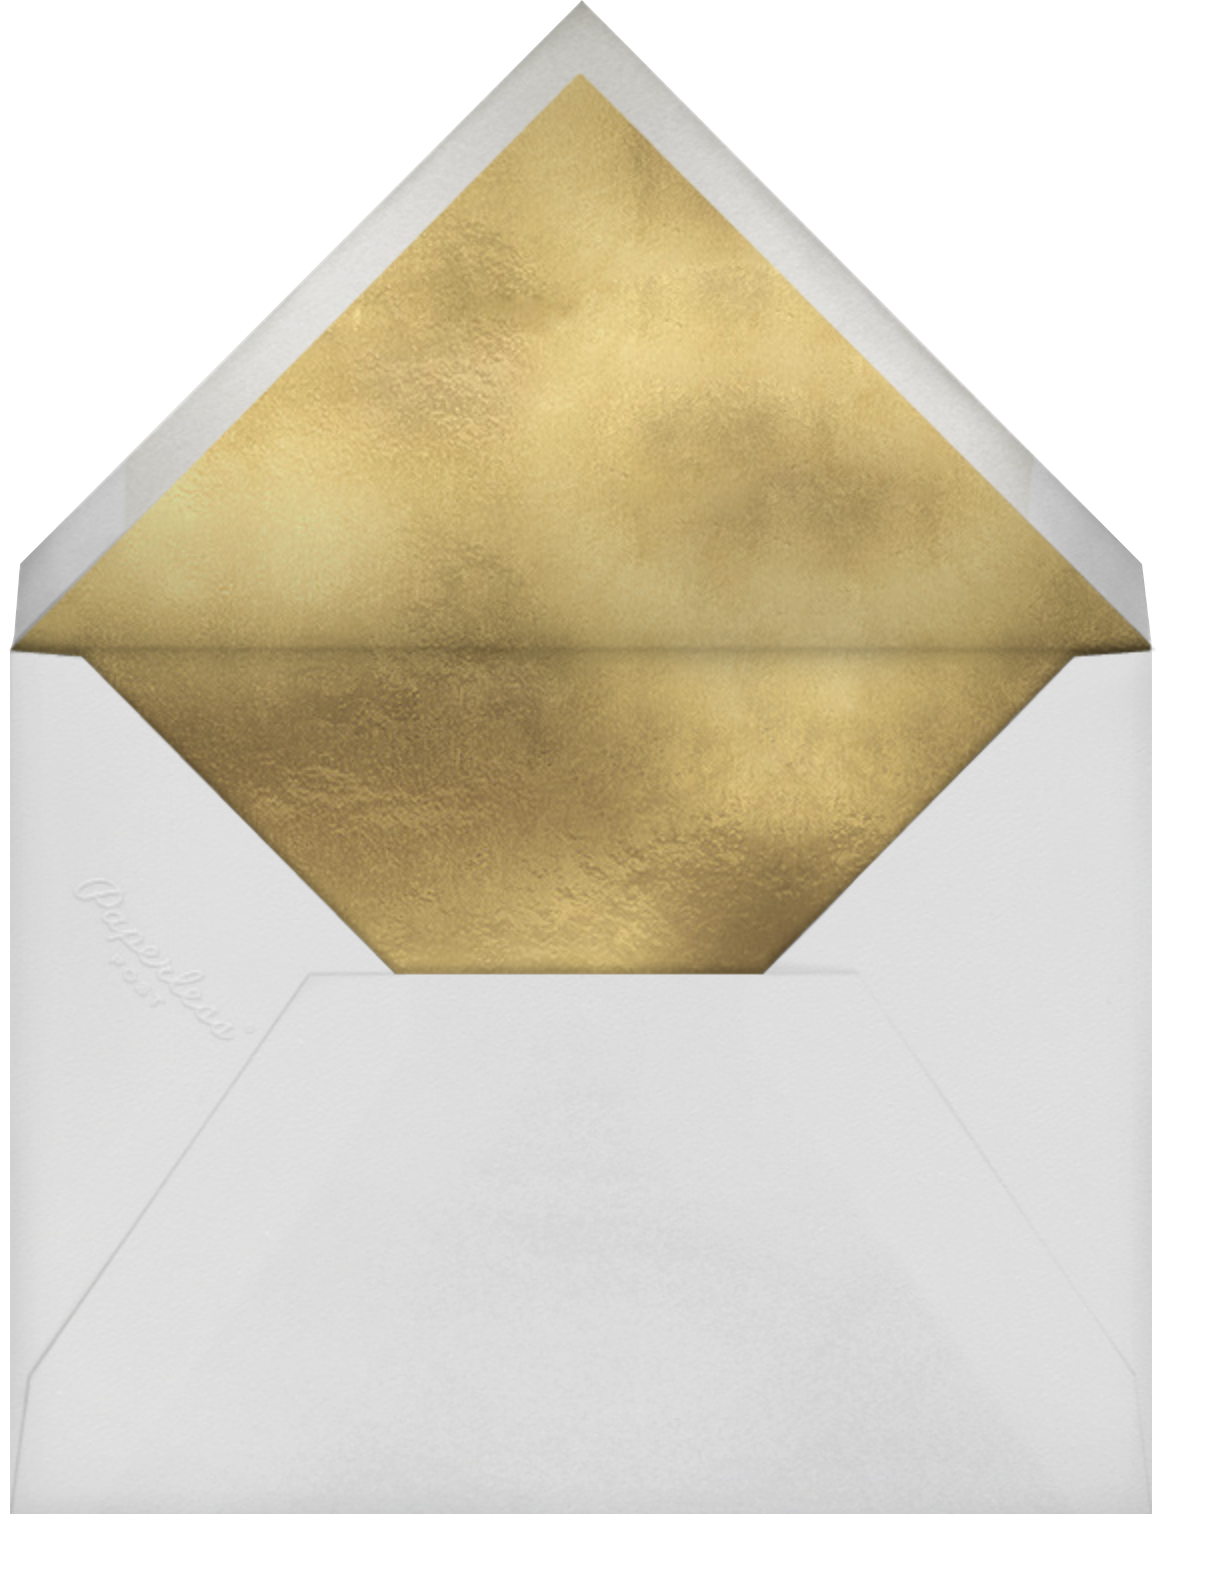 Merry and Bright Script - White - Rifle Paper Co. - Company holiday cards - envelope back